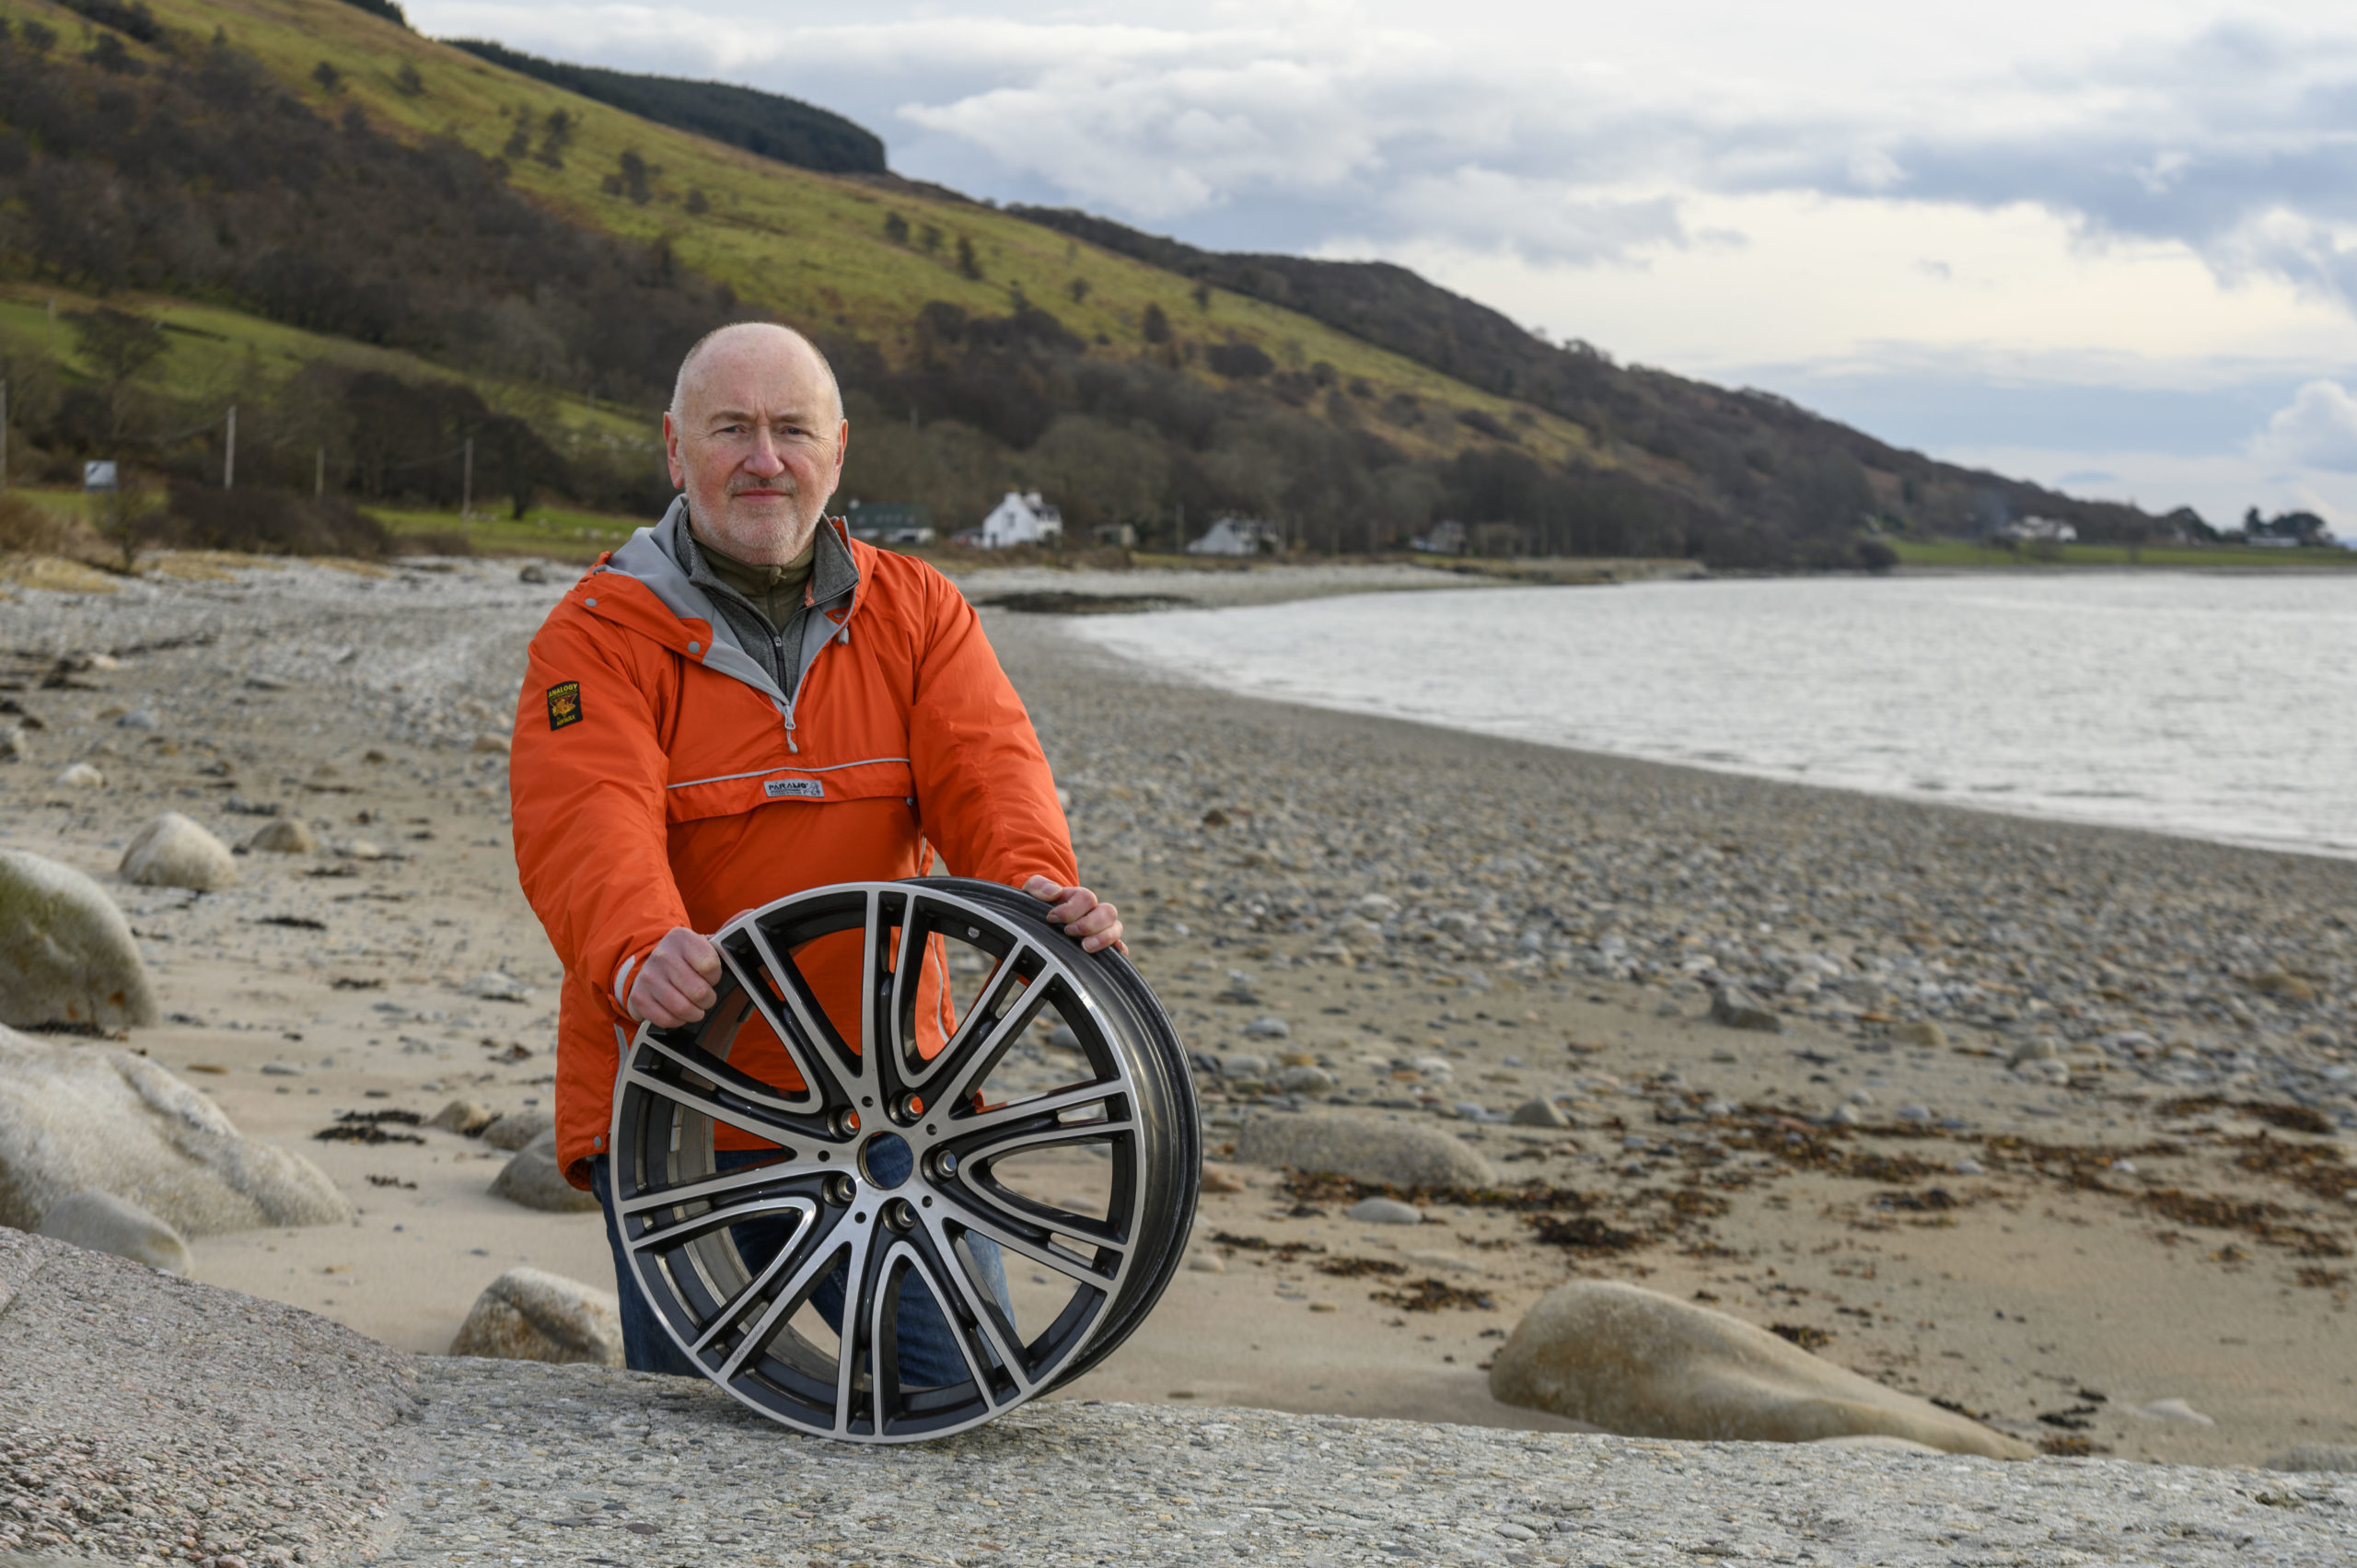 Cameron Park on Pirnmill beach, Arran, with the car wheel which was damaged by a pothole